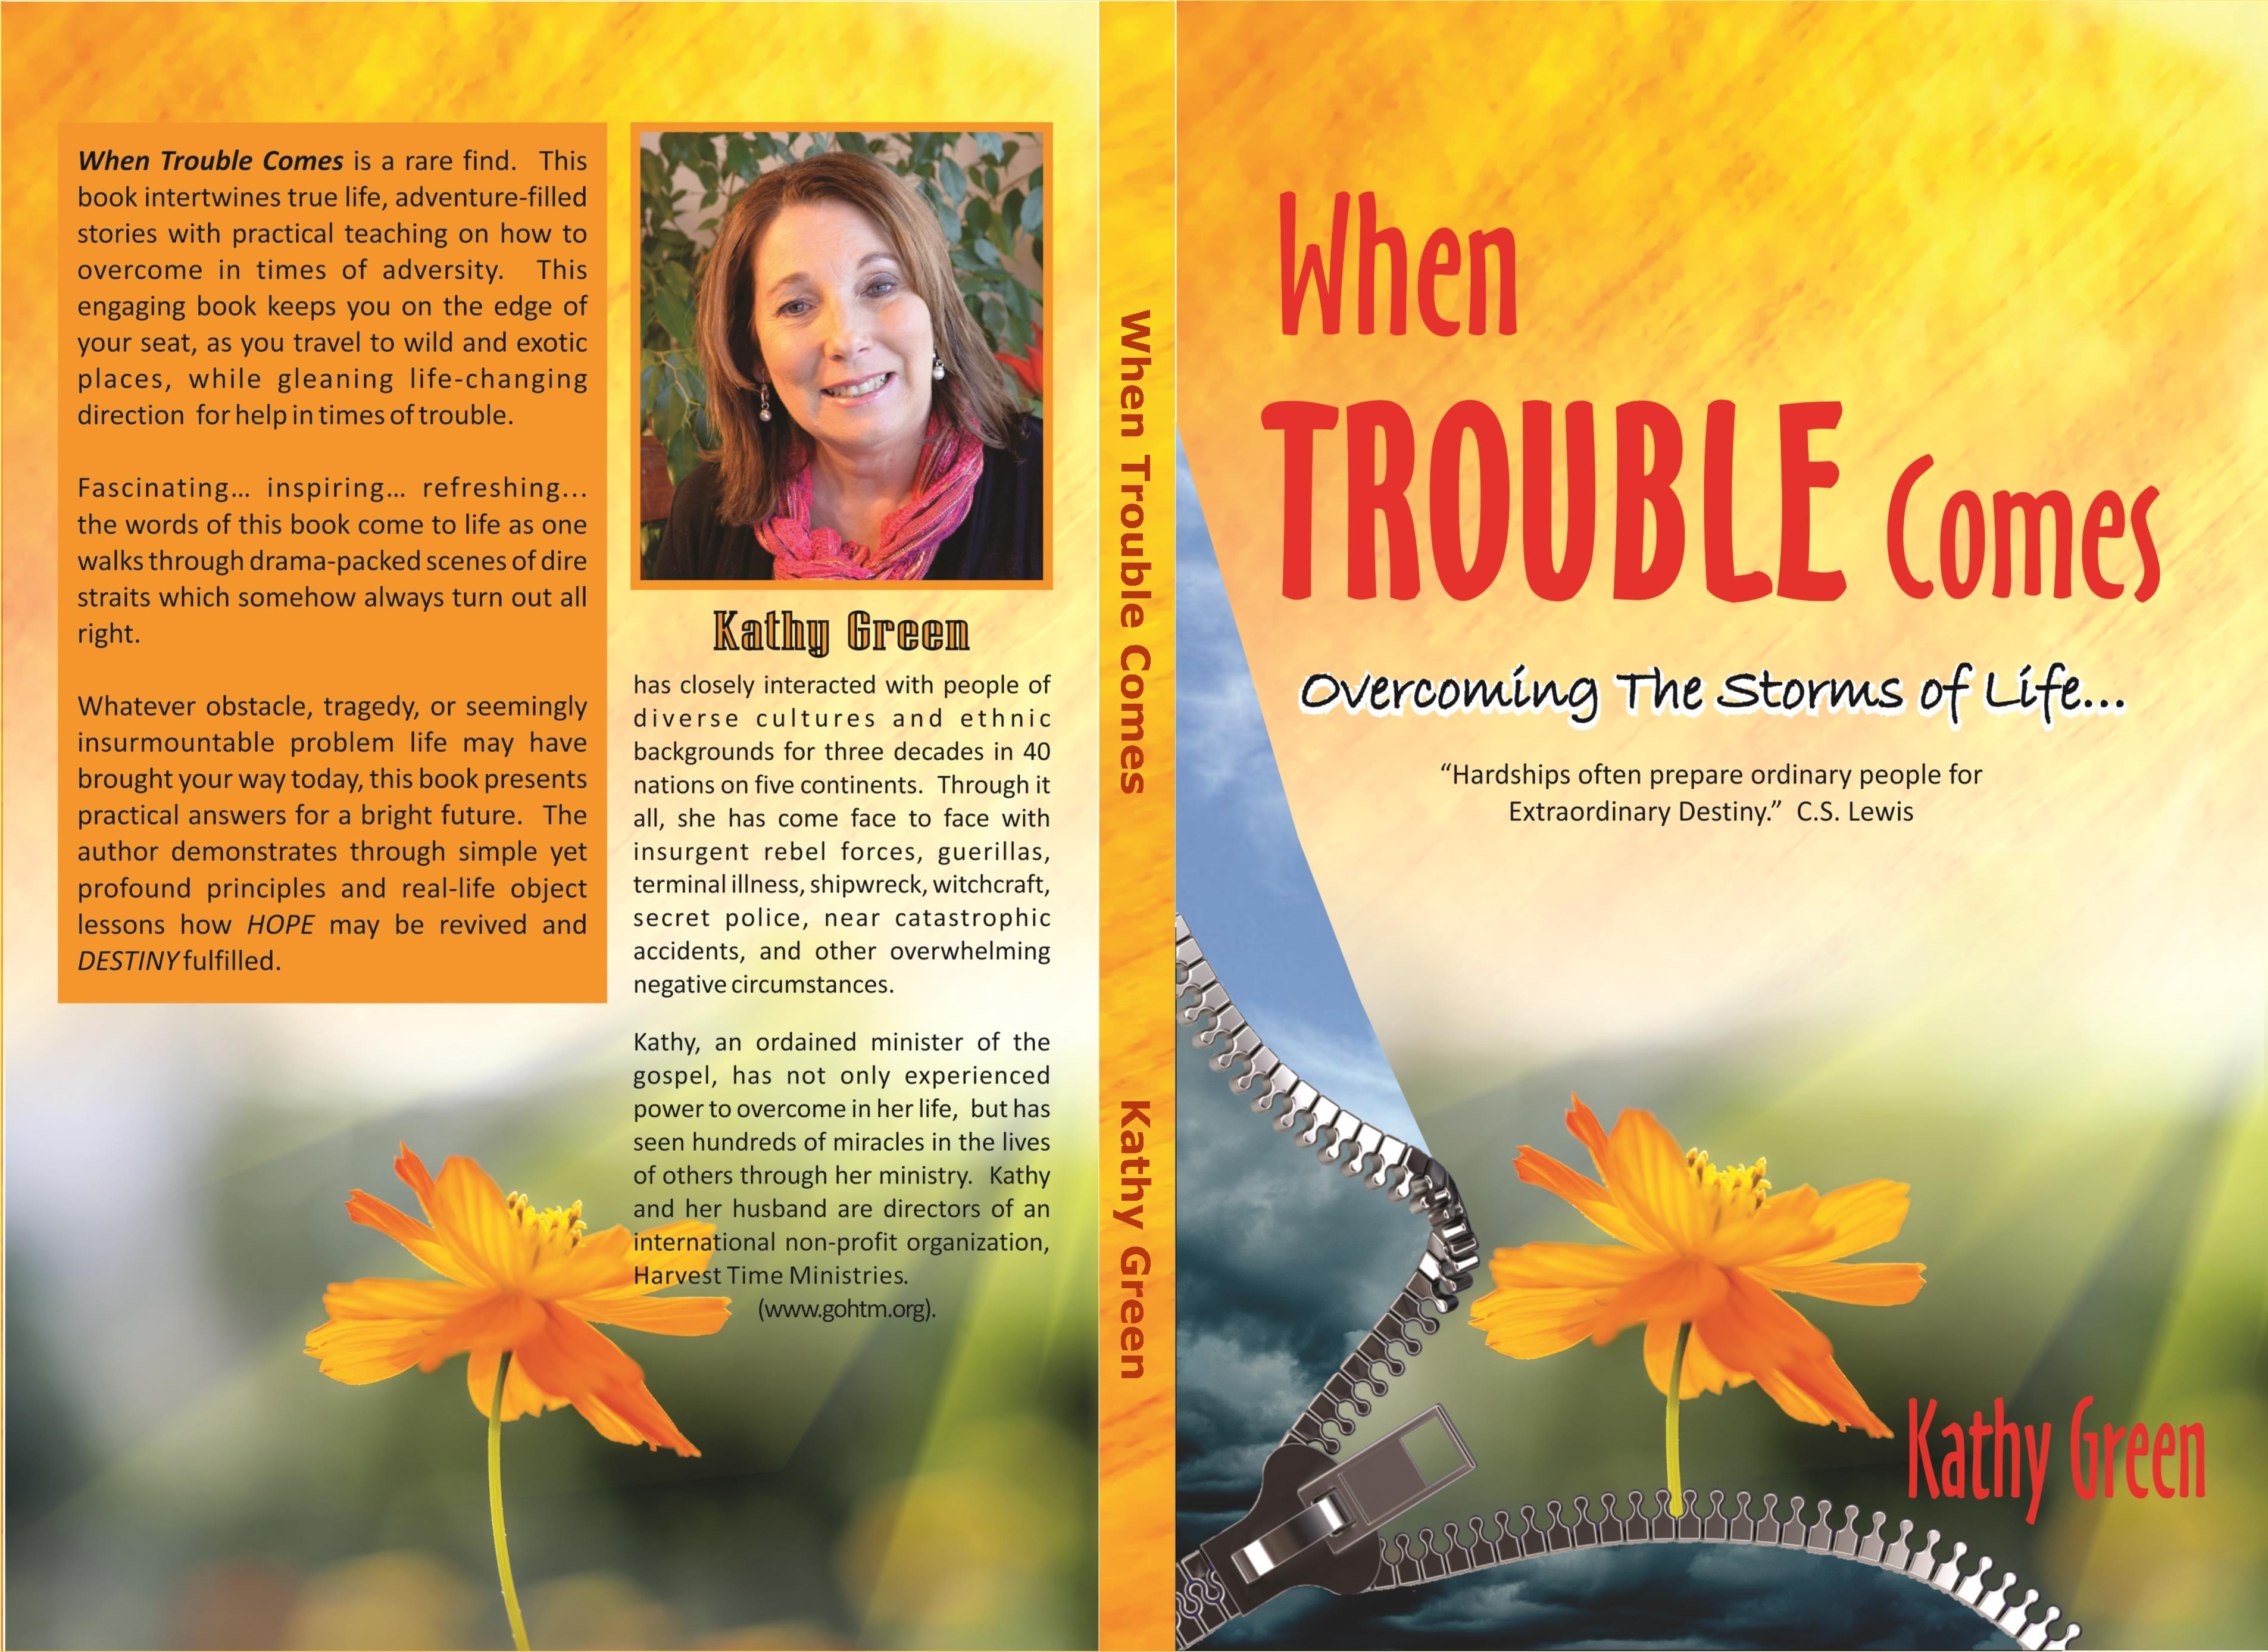 When Trouble Comes cover image